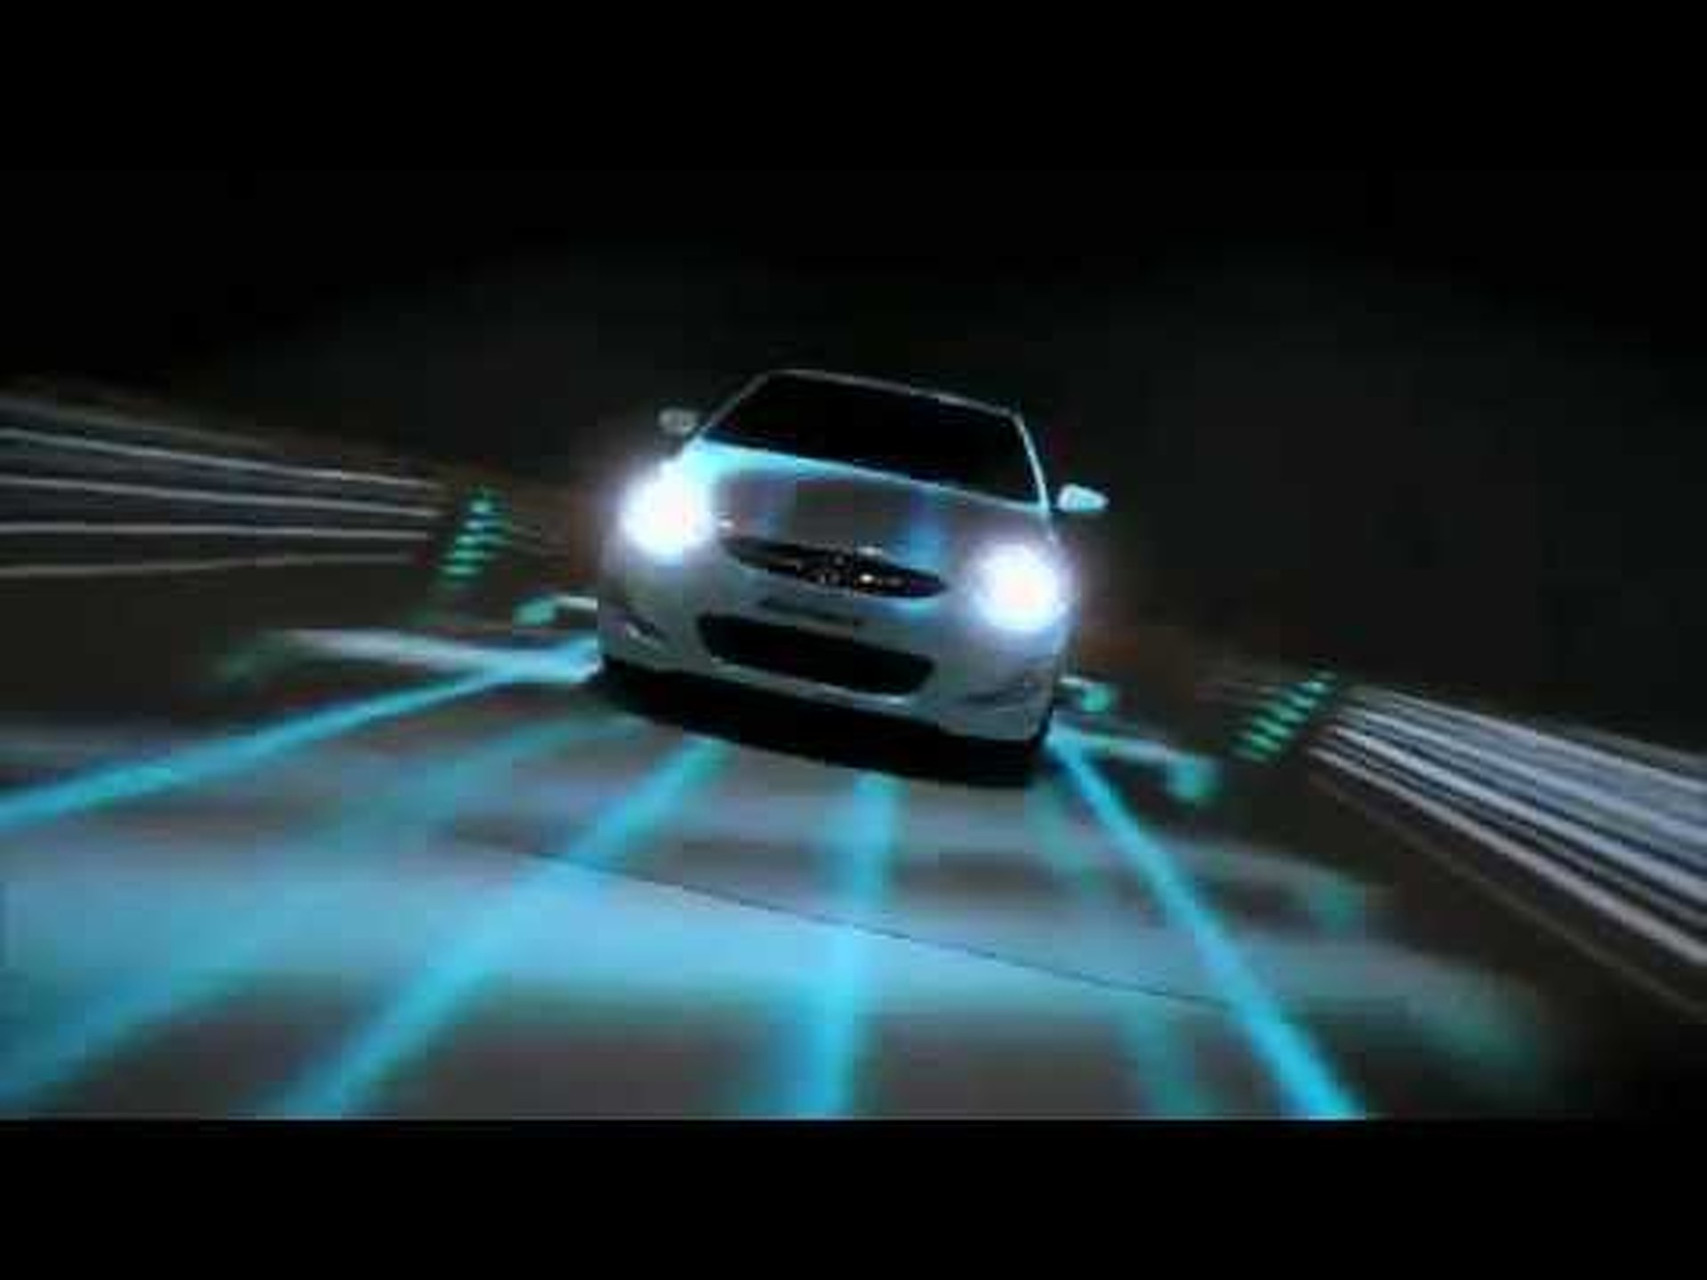 2012 Hyundai Accent 3D Projection